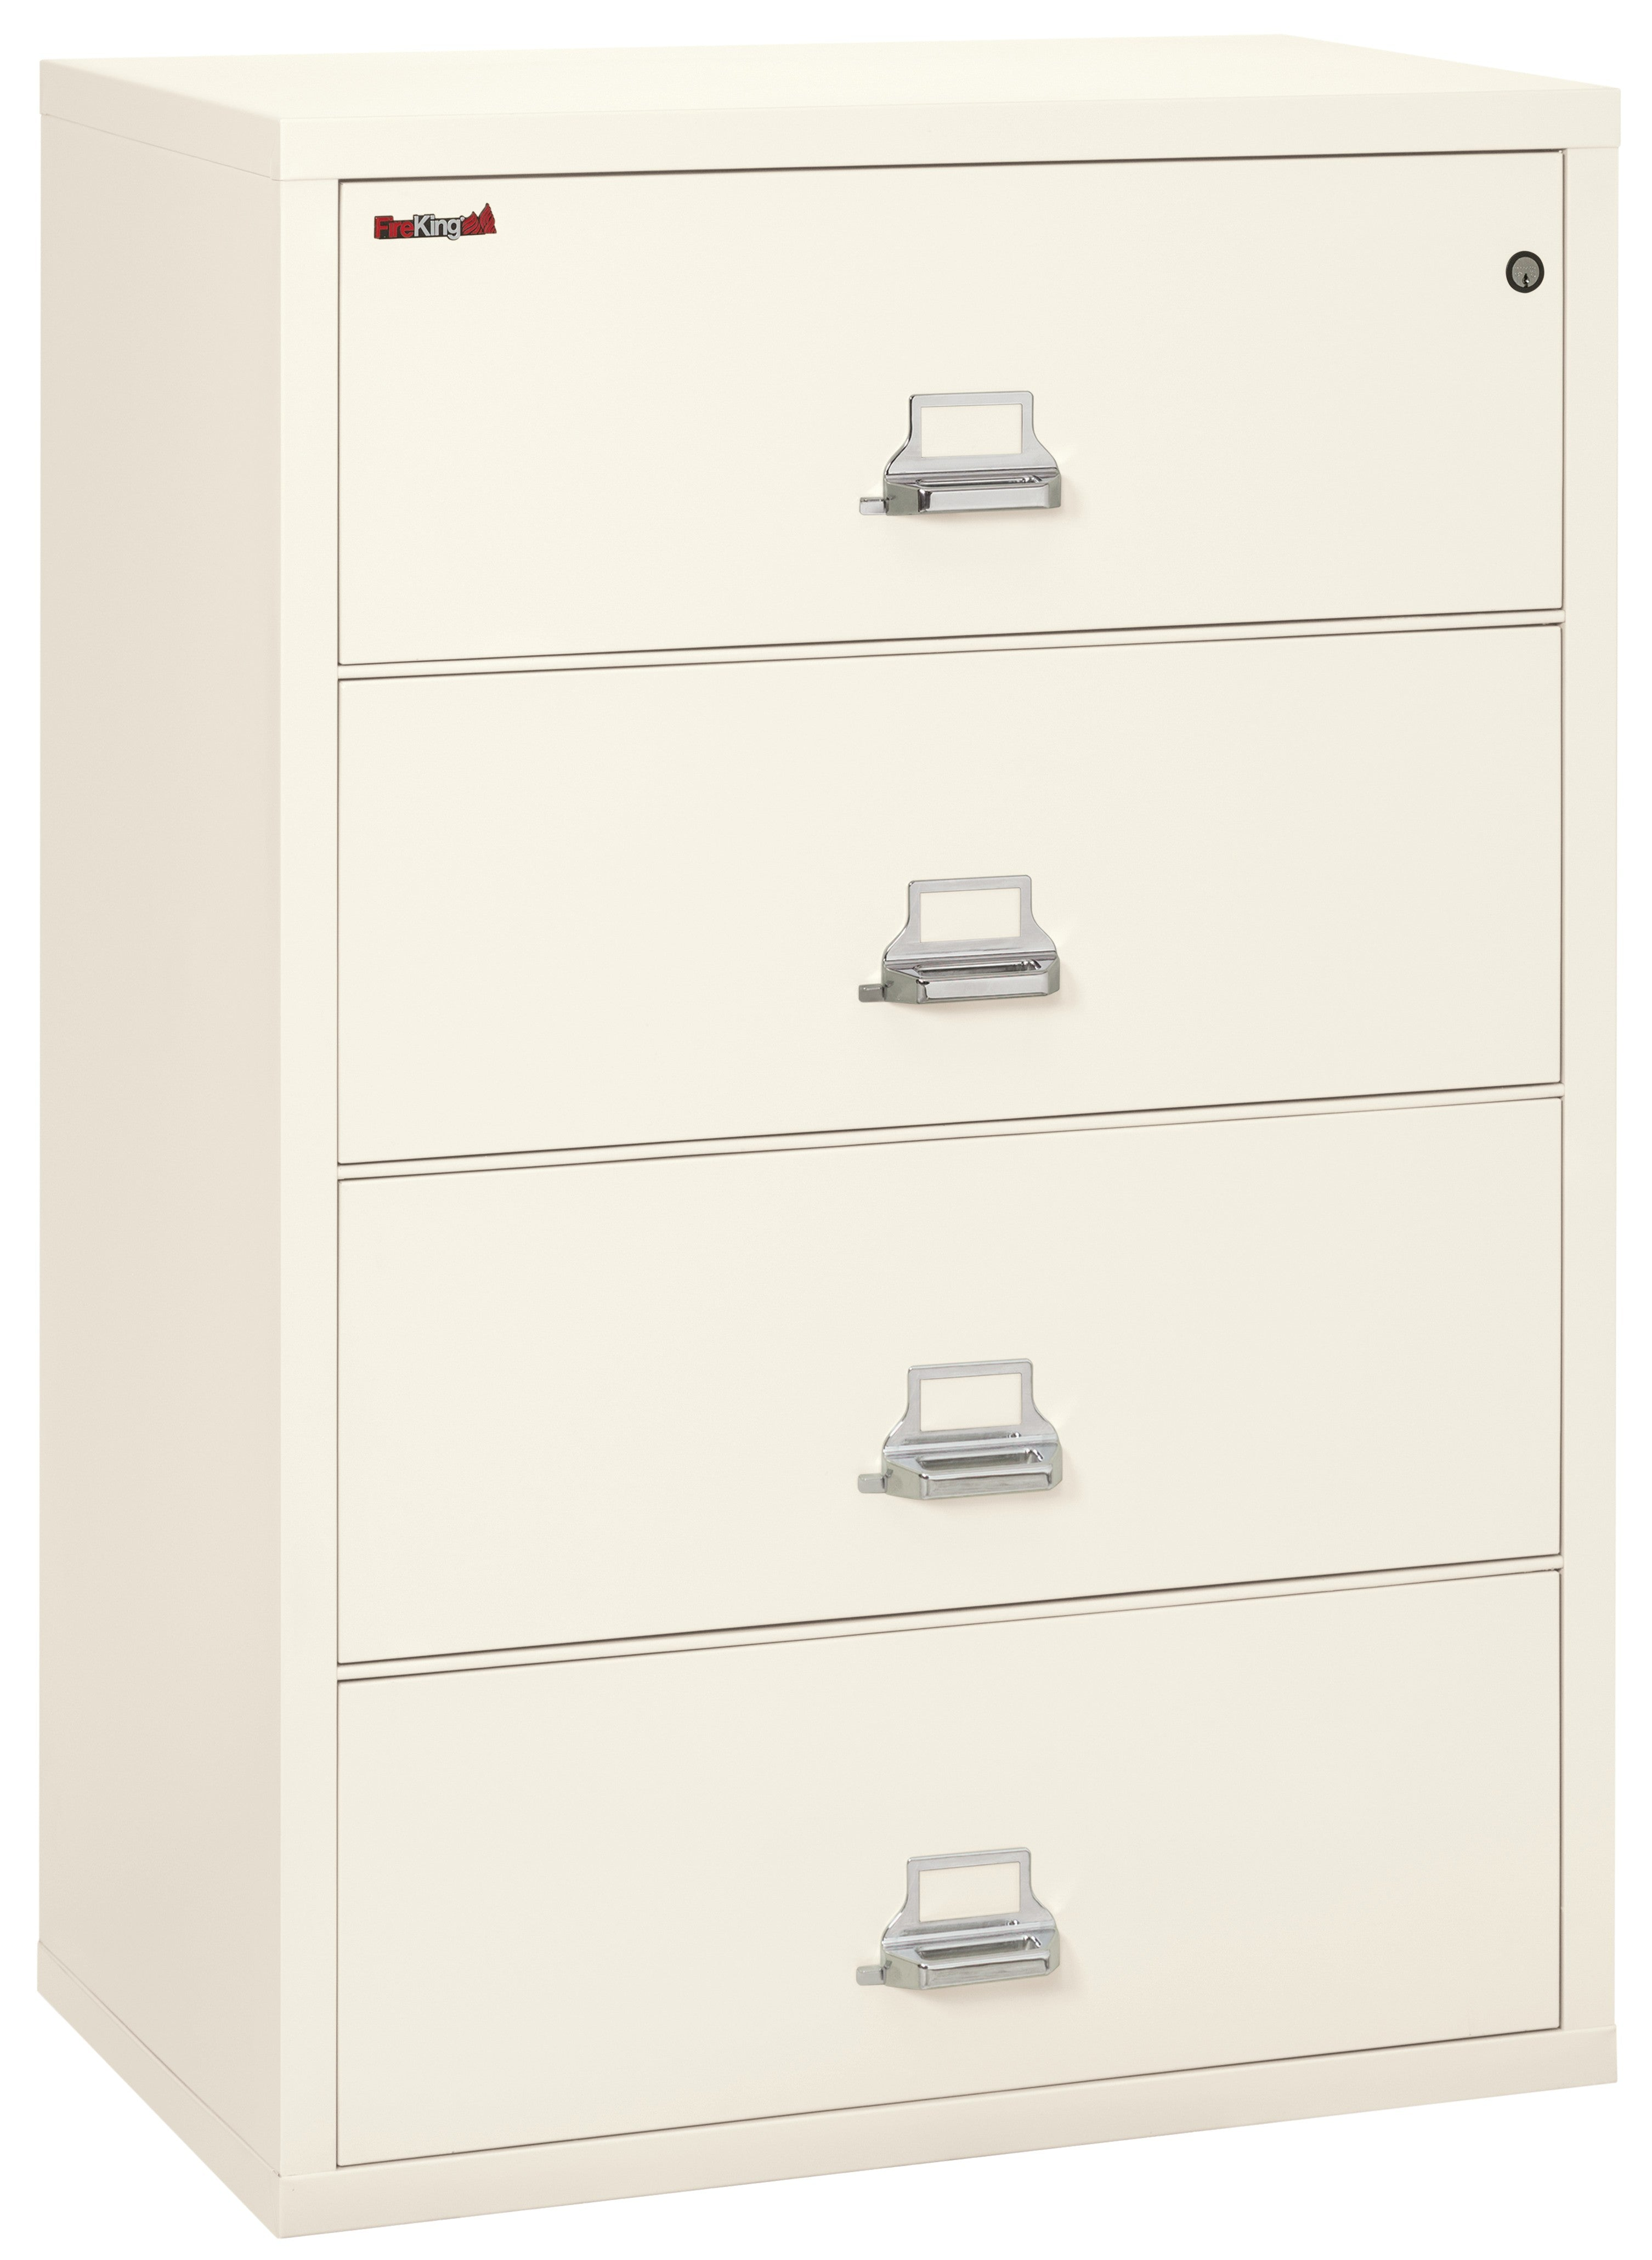 "Fireking 4 Drawer 38"" wide Classic Lateral File Cabinet"